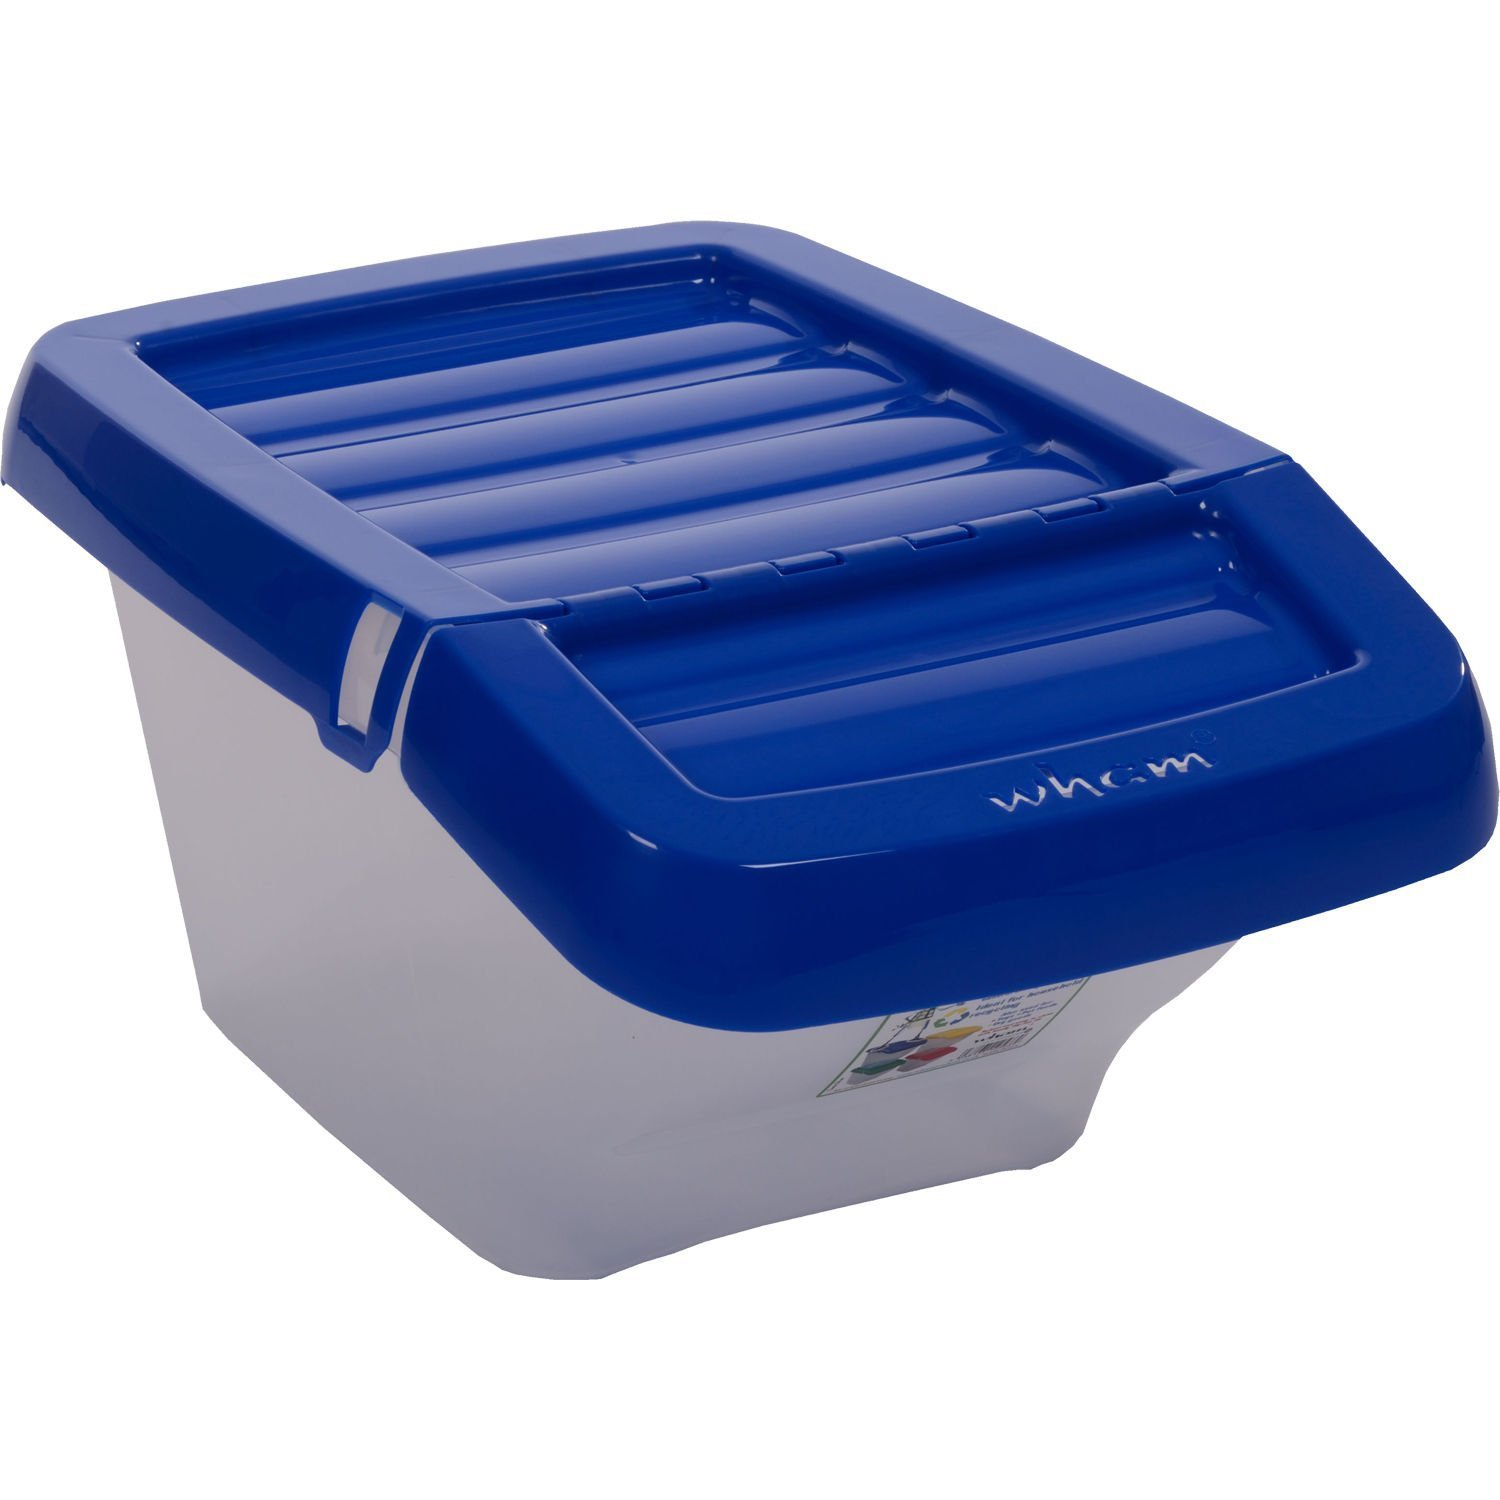 30-LITRE-STACKABLE-RECYCLING-CLEAR-BASE-COLOUR-CODED-PLASTIC-BINS-WITH-HINGED-LIDS